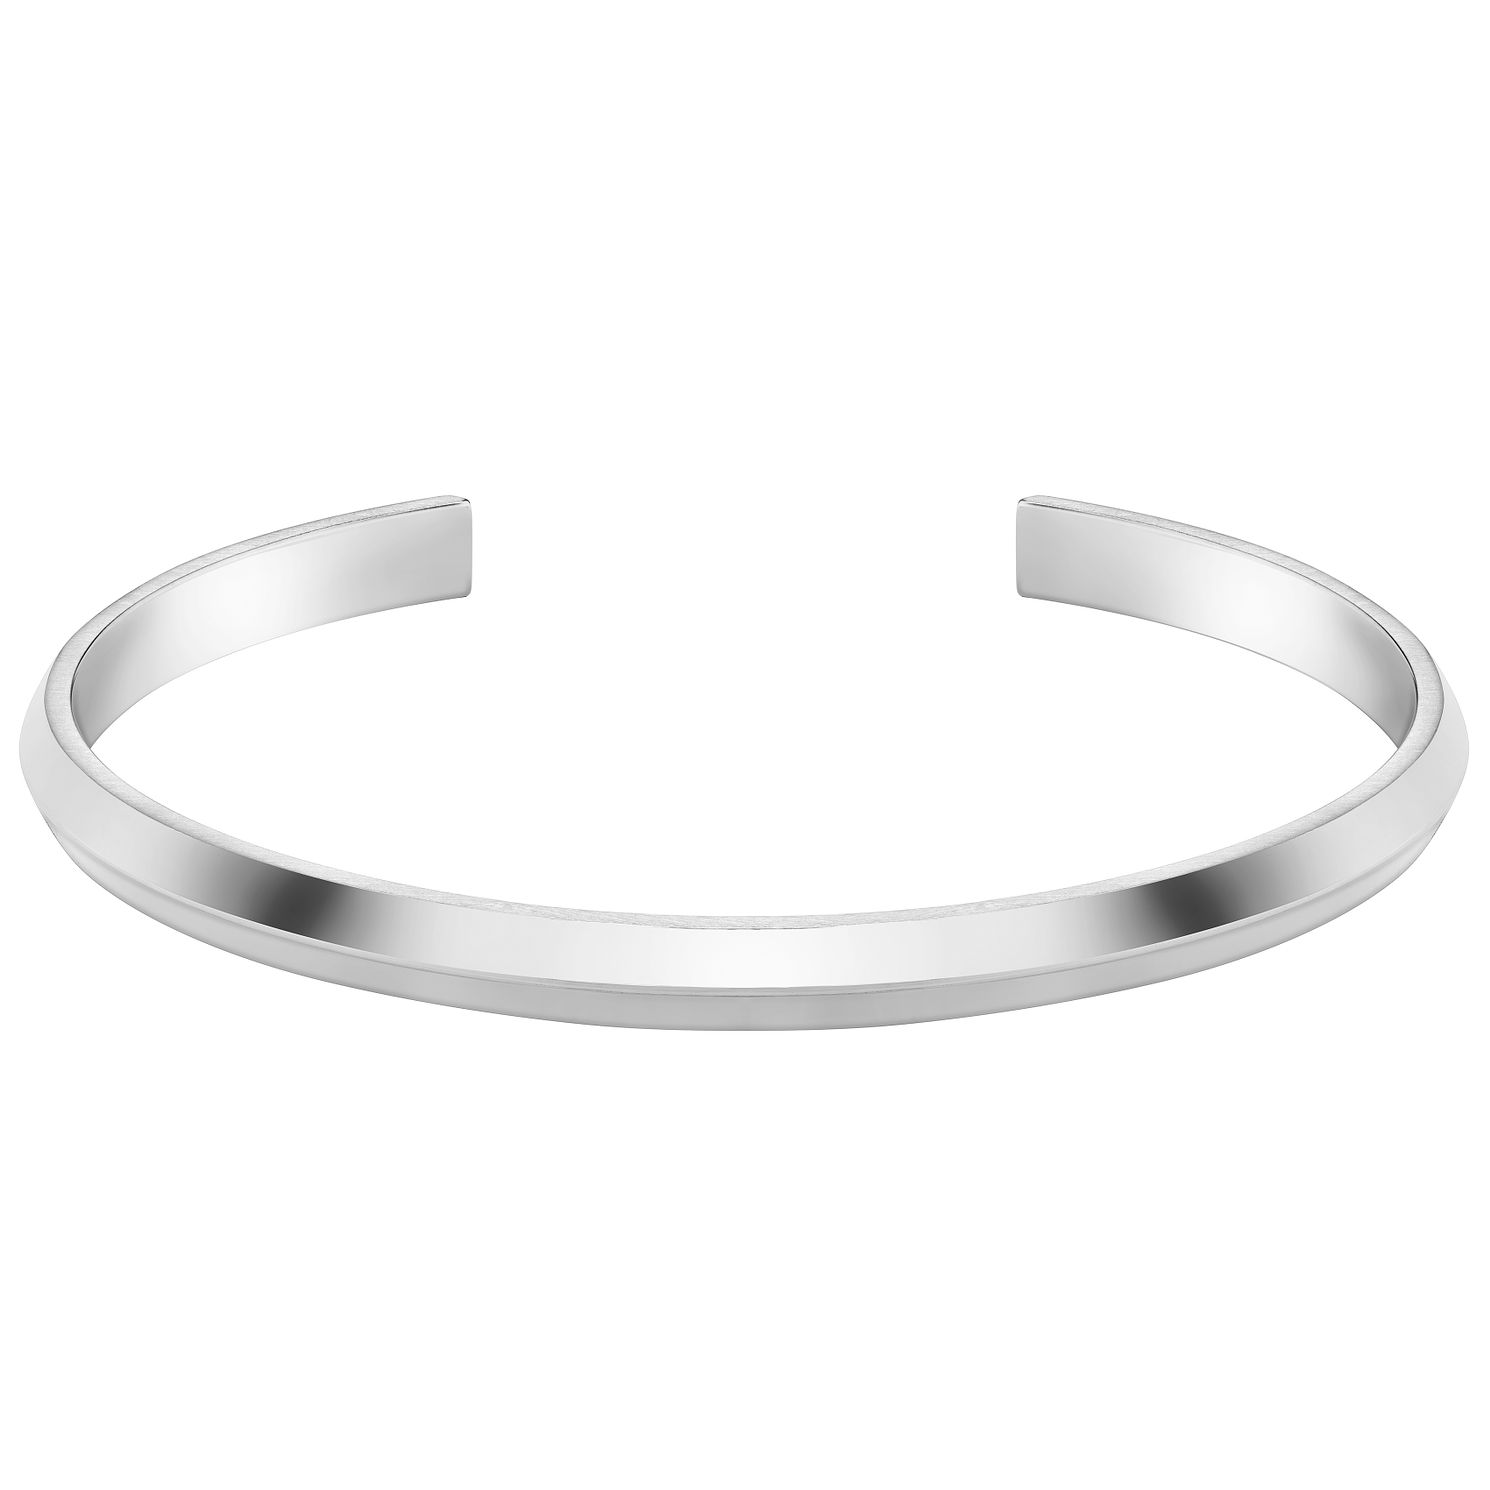 BOSS Insignia Ladies' Stainless Steel Bangle - Product number 5008174